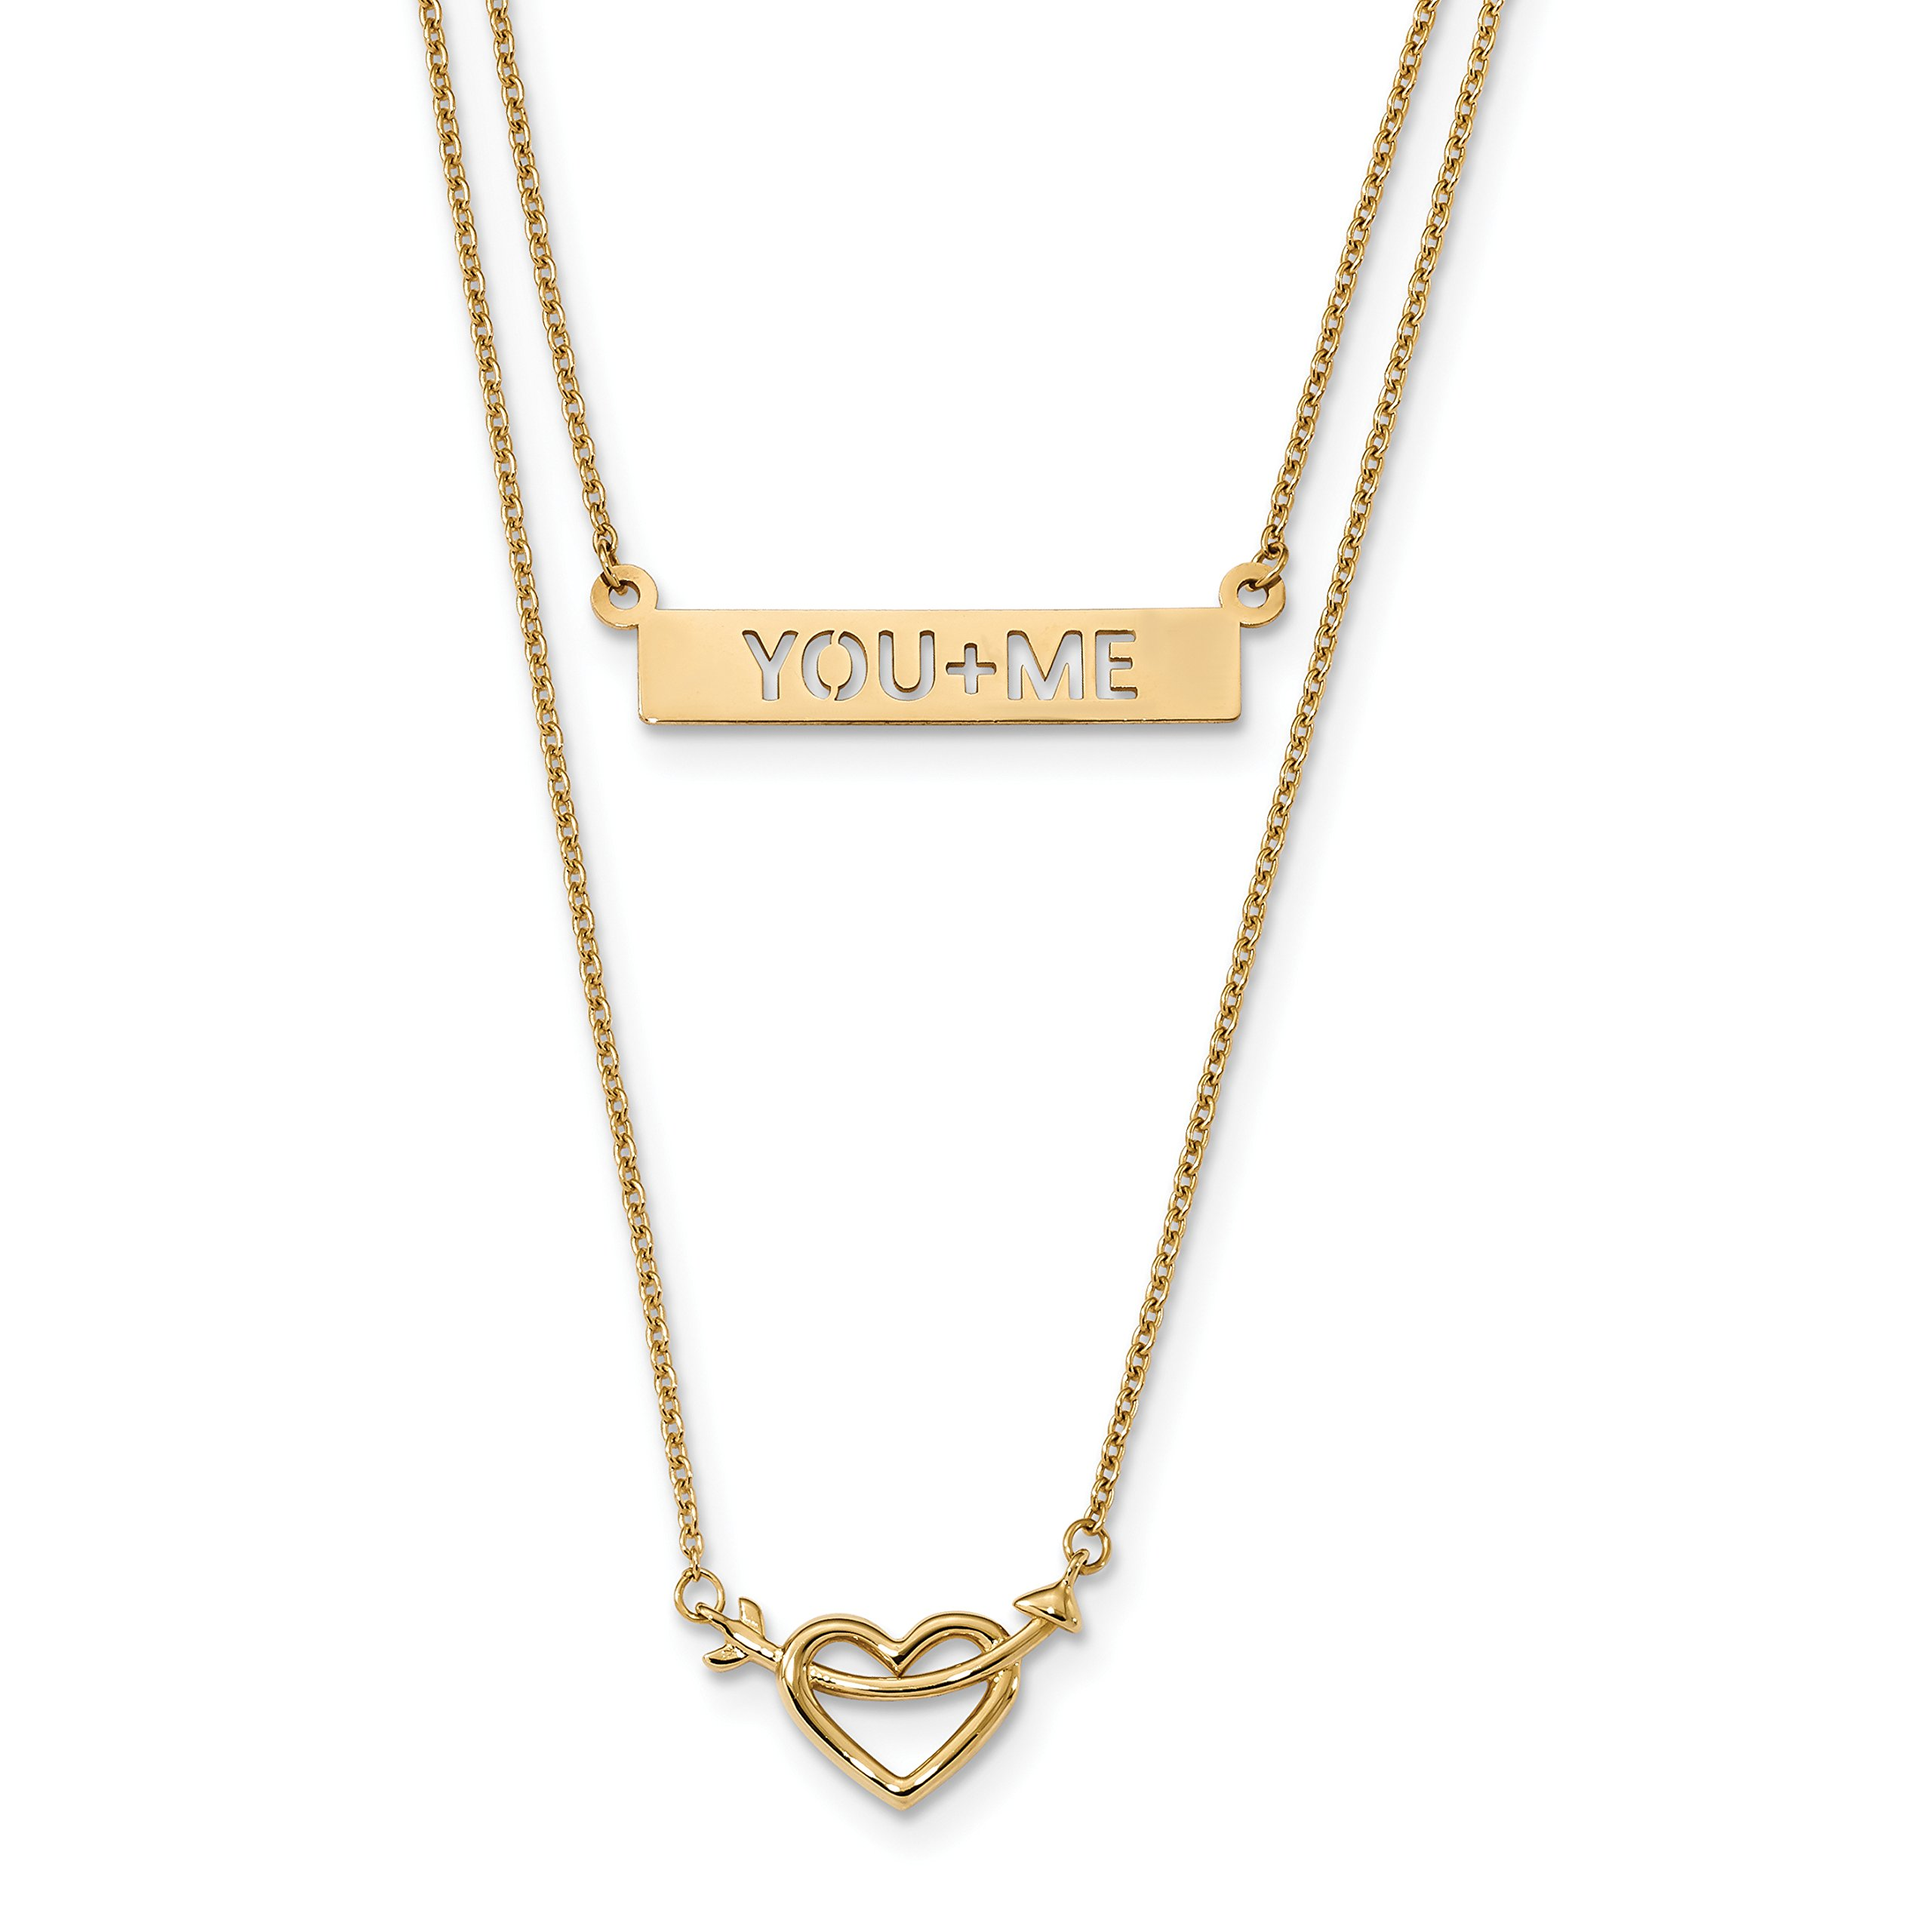 ICE CARATS 14k Yellow Gold Two Strand Heart You+me Bar Chain Necklace Fancy S/love Fine Jewelry Gift For Women Heart